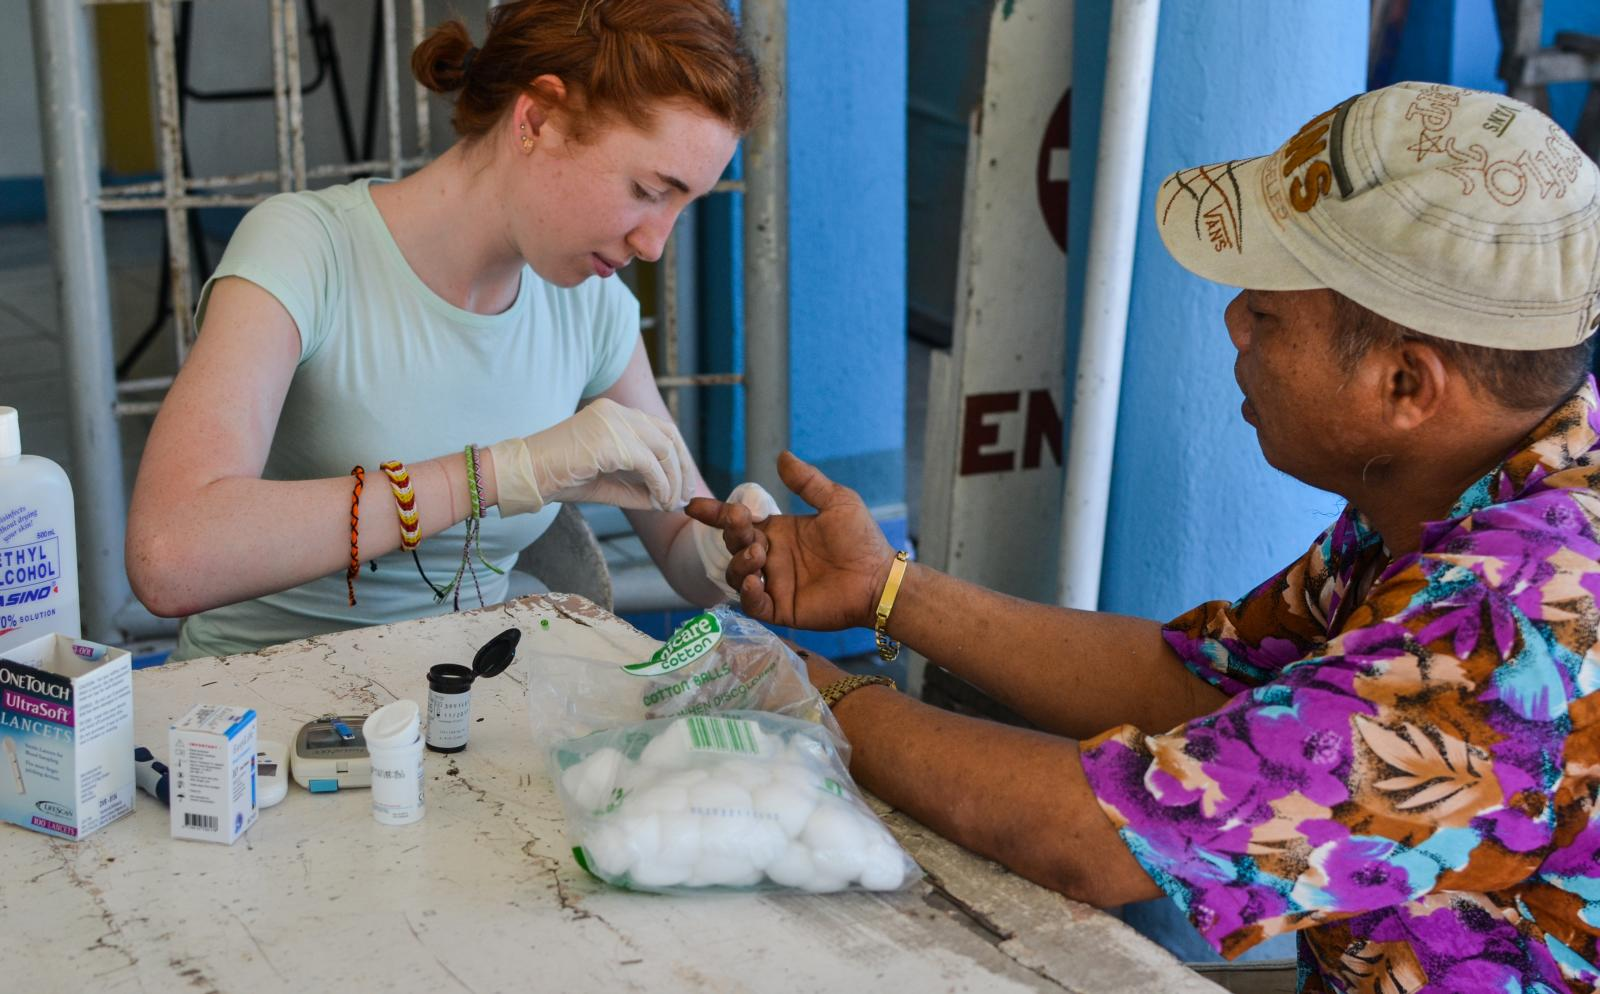 A medical volunteer assists a man during a medical outreach in Philippines